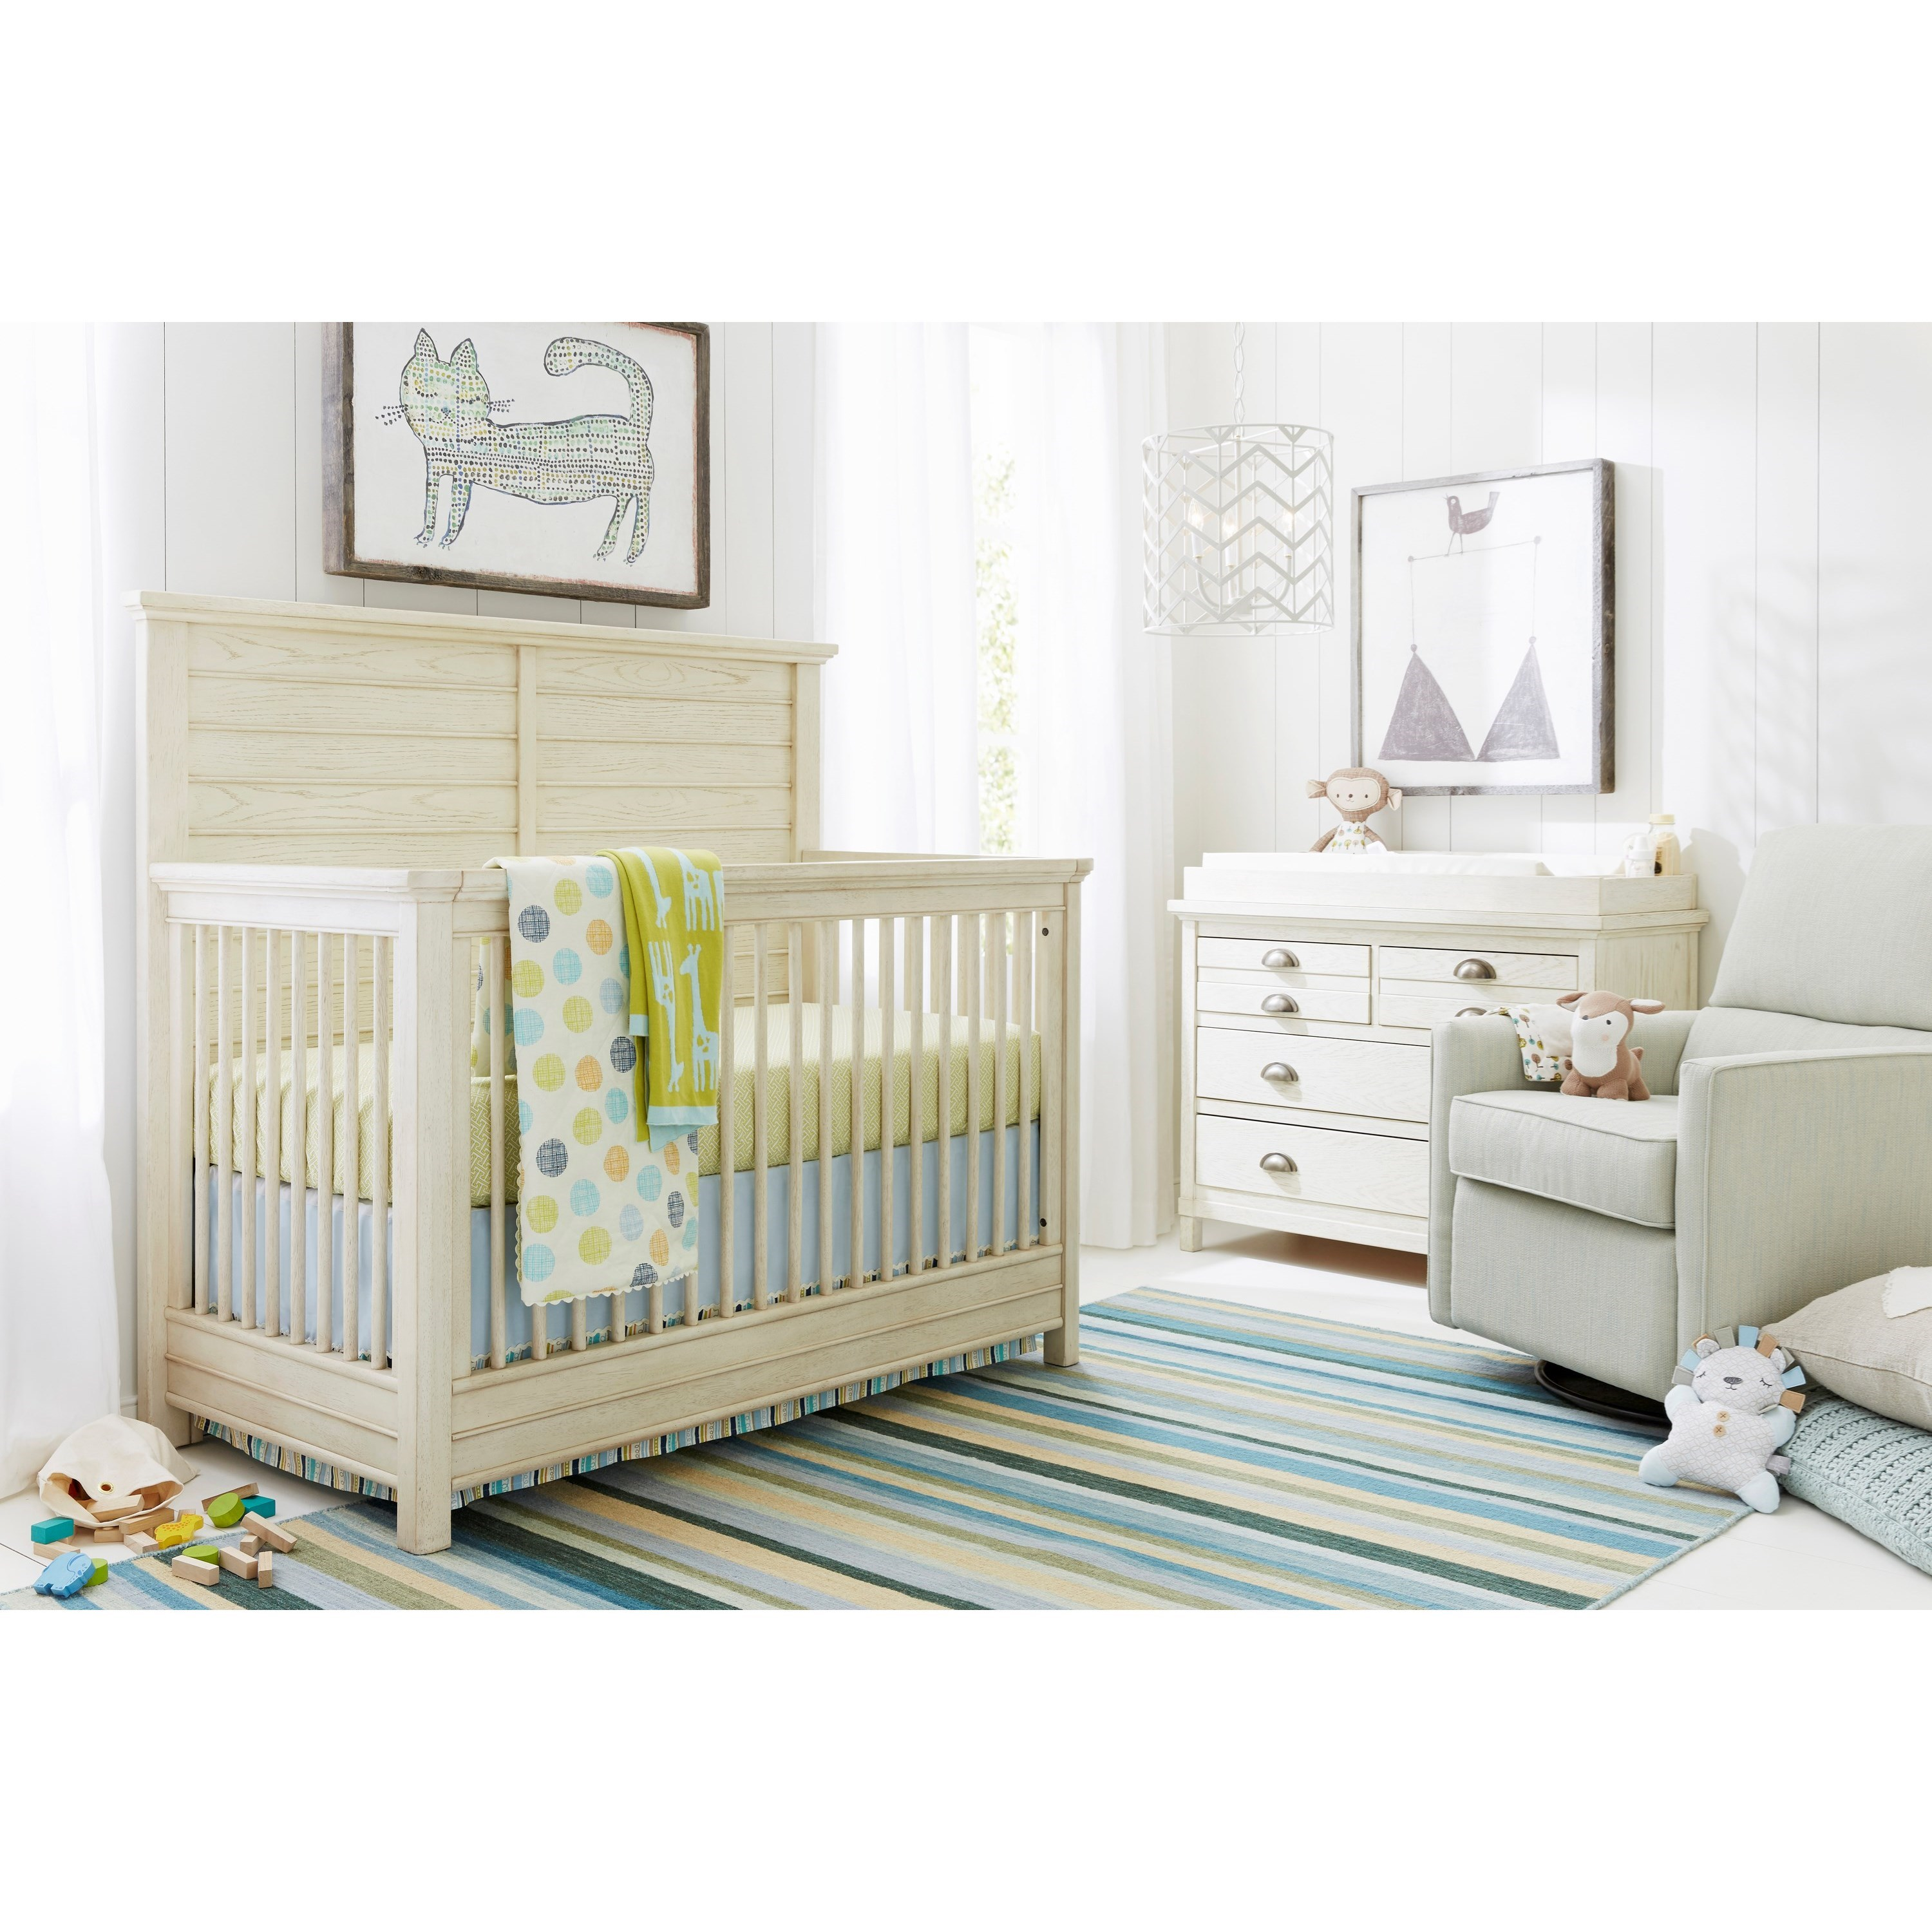 Stone & Leigh Furniture Driftwood Park Crib Bedroom Group - Item Number: 536-23 C Bedroom Group 1